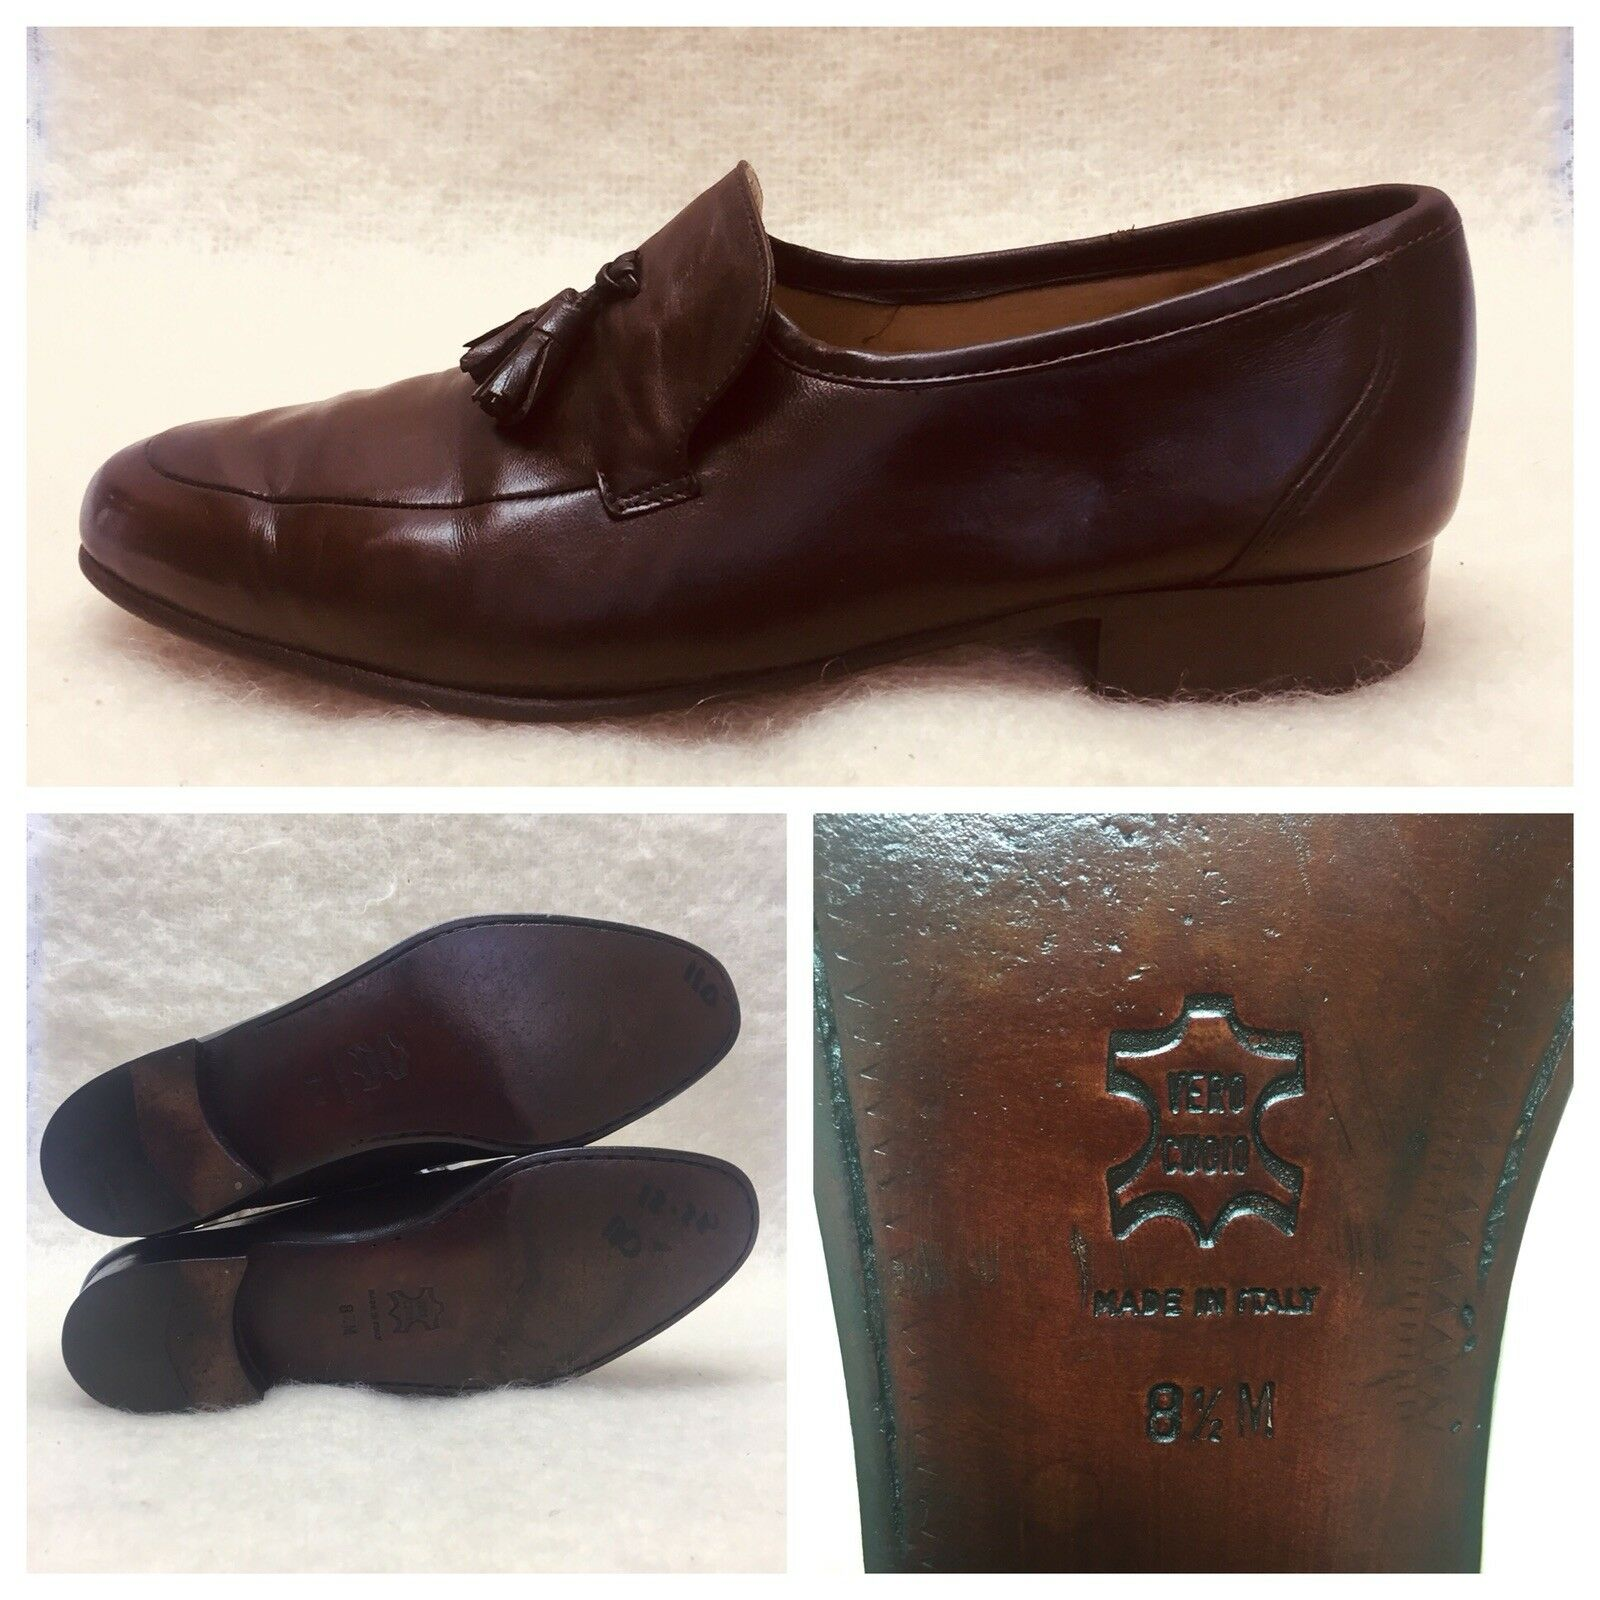 Bruno Magli Soft  On Dress Leder Tassel  Herren Größe 8.5 Slip On  Loafer Braun  53ac1b